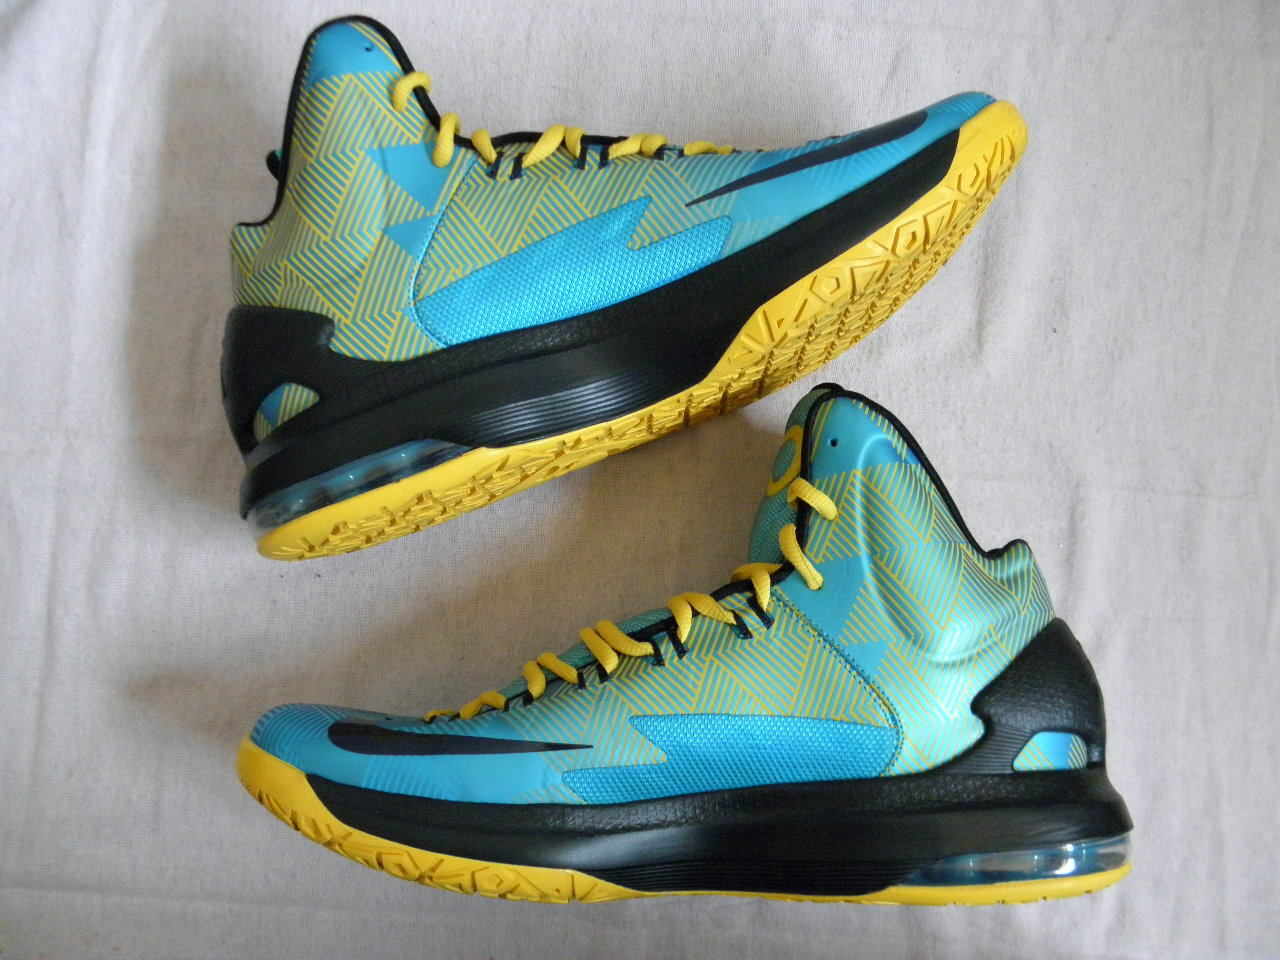 Nike Air Max Zoom KD5 KD 5 V Five N7 size 11 VNDS worn twice Elite Kevin Durant